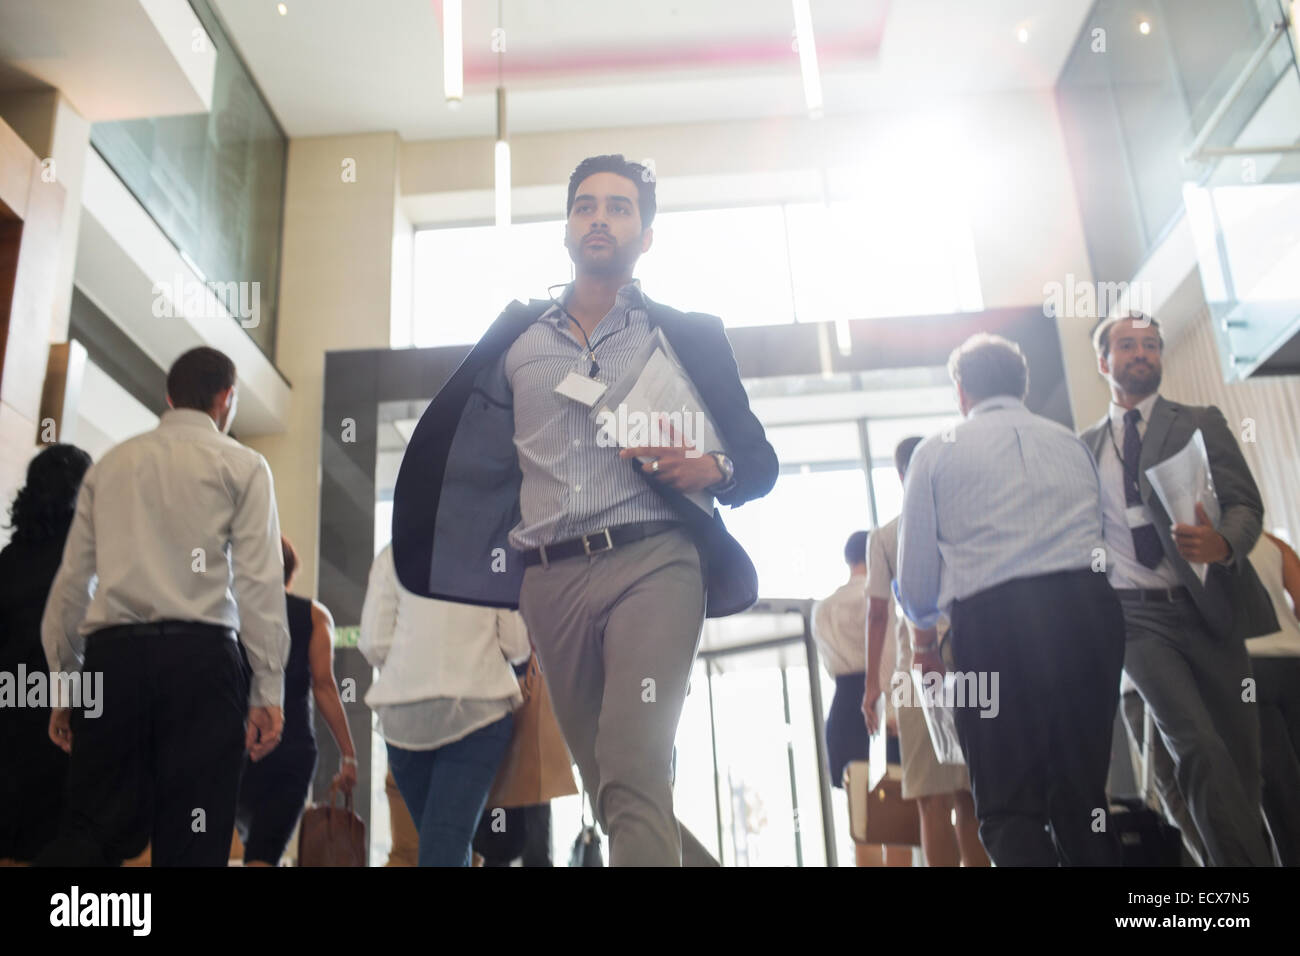 Hommes tenant des documents et l'exécution in office corridor Photo Stock